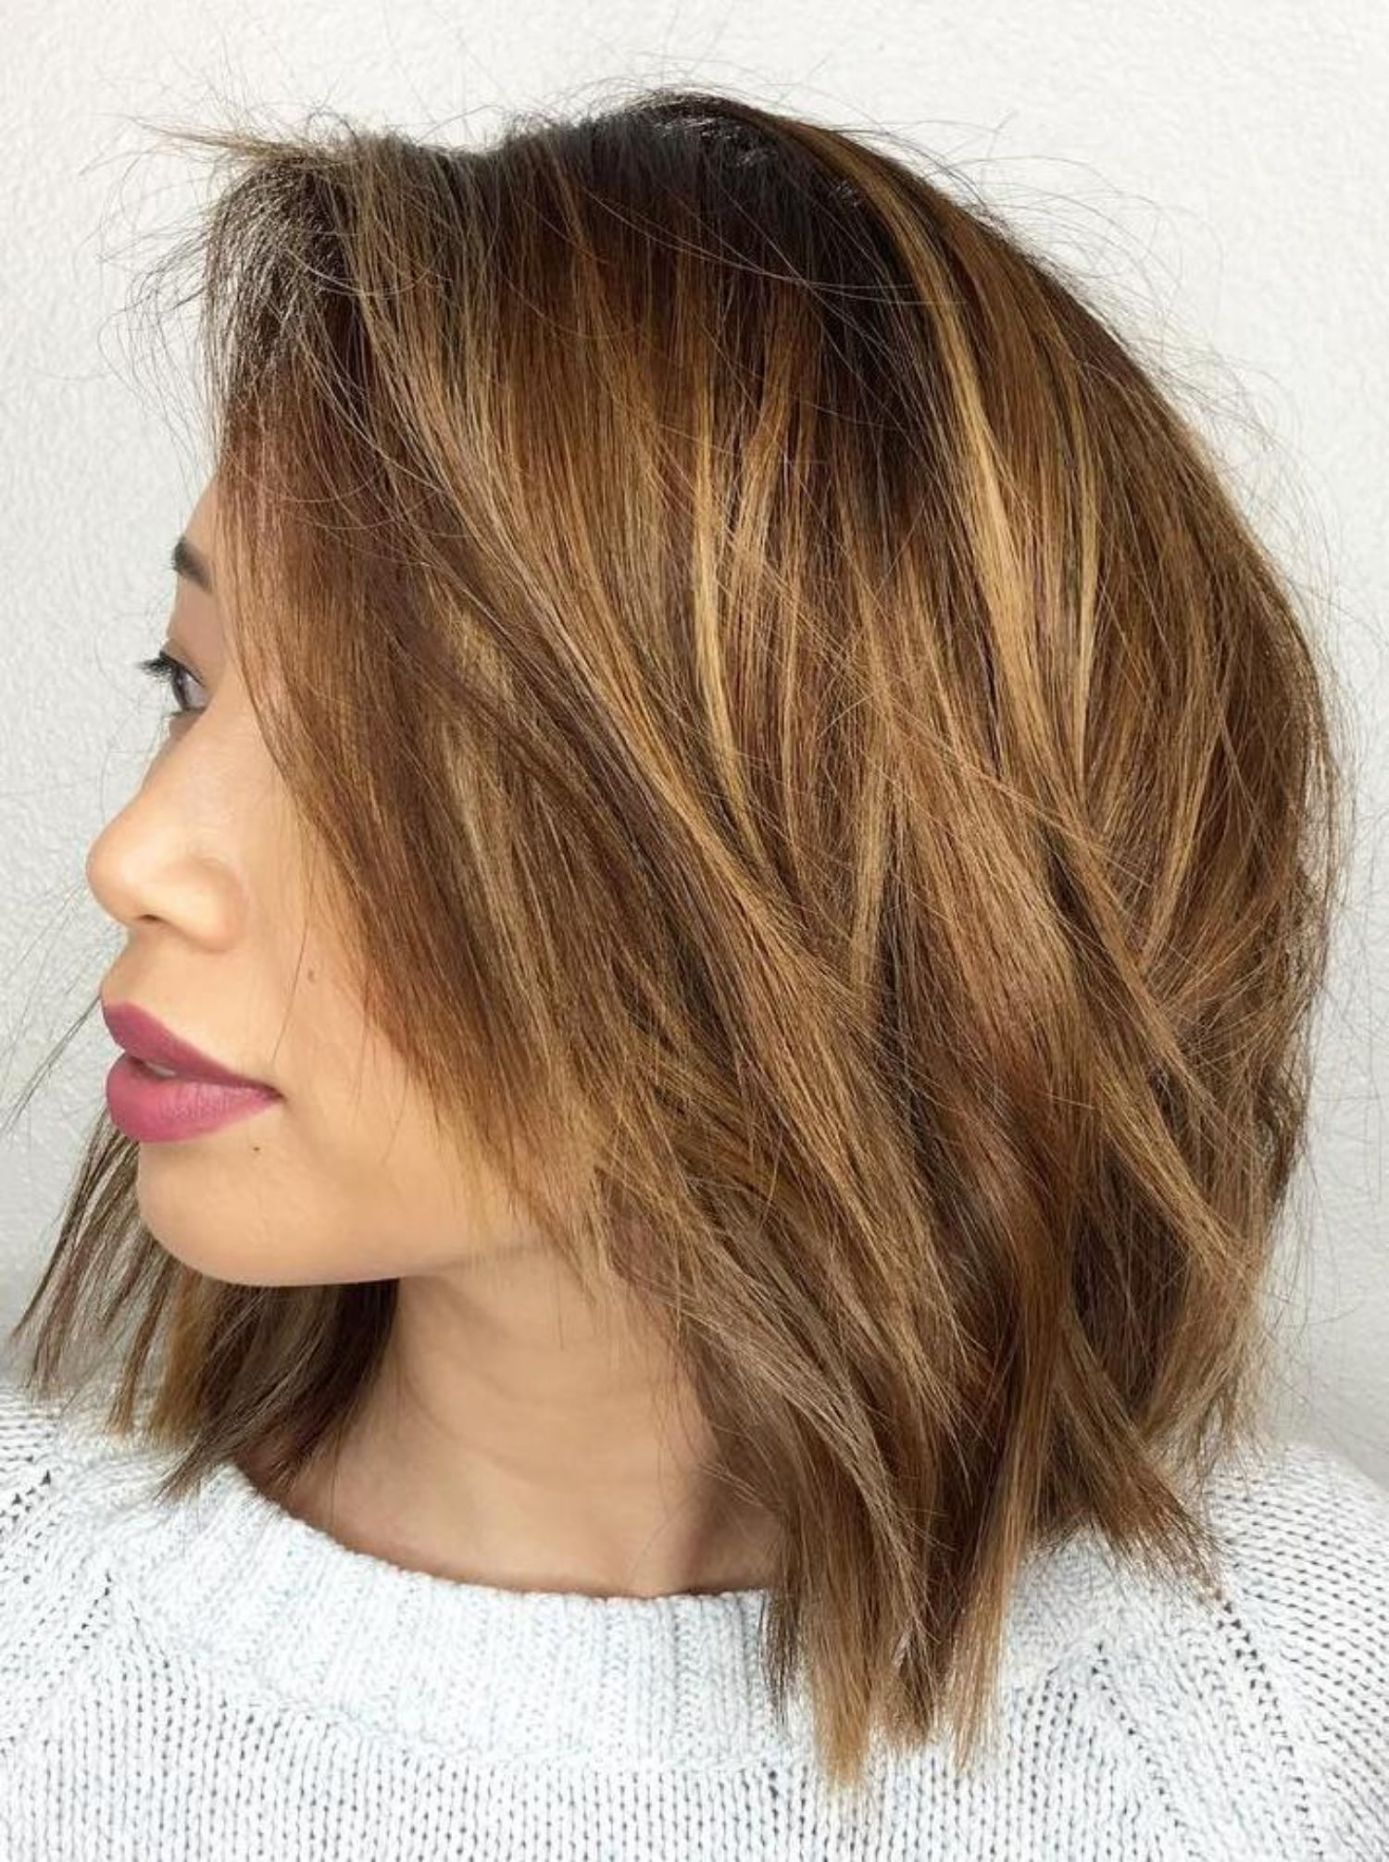 Long Layered Piecy Chunky Chin Length Bob Love It Short Hairstyles For Thick Hair Thick Hair Styles Hair Styles